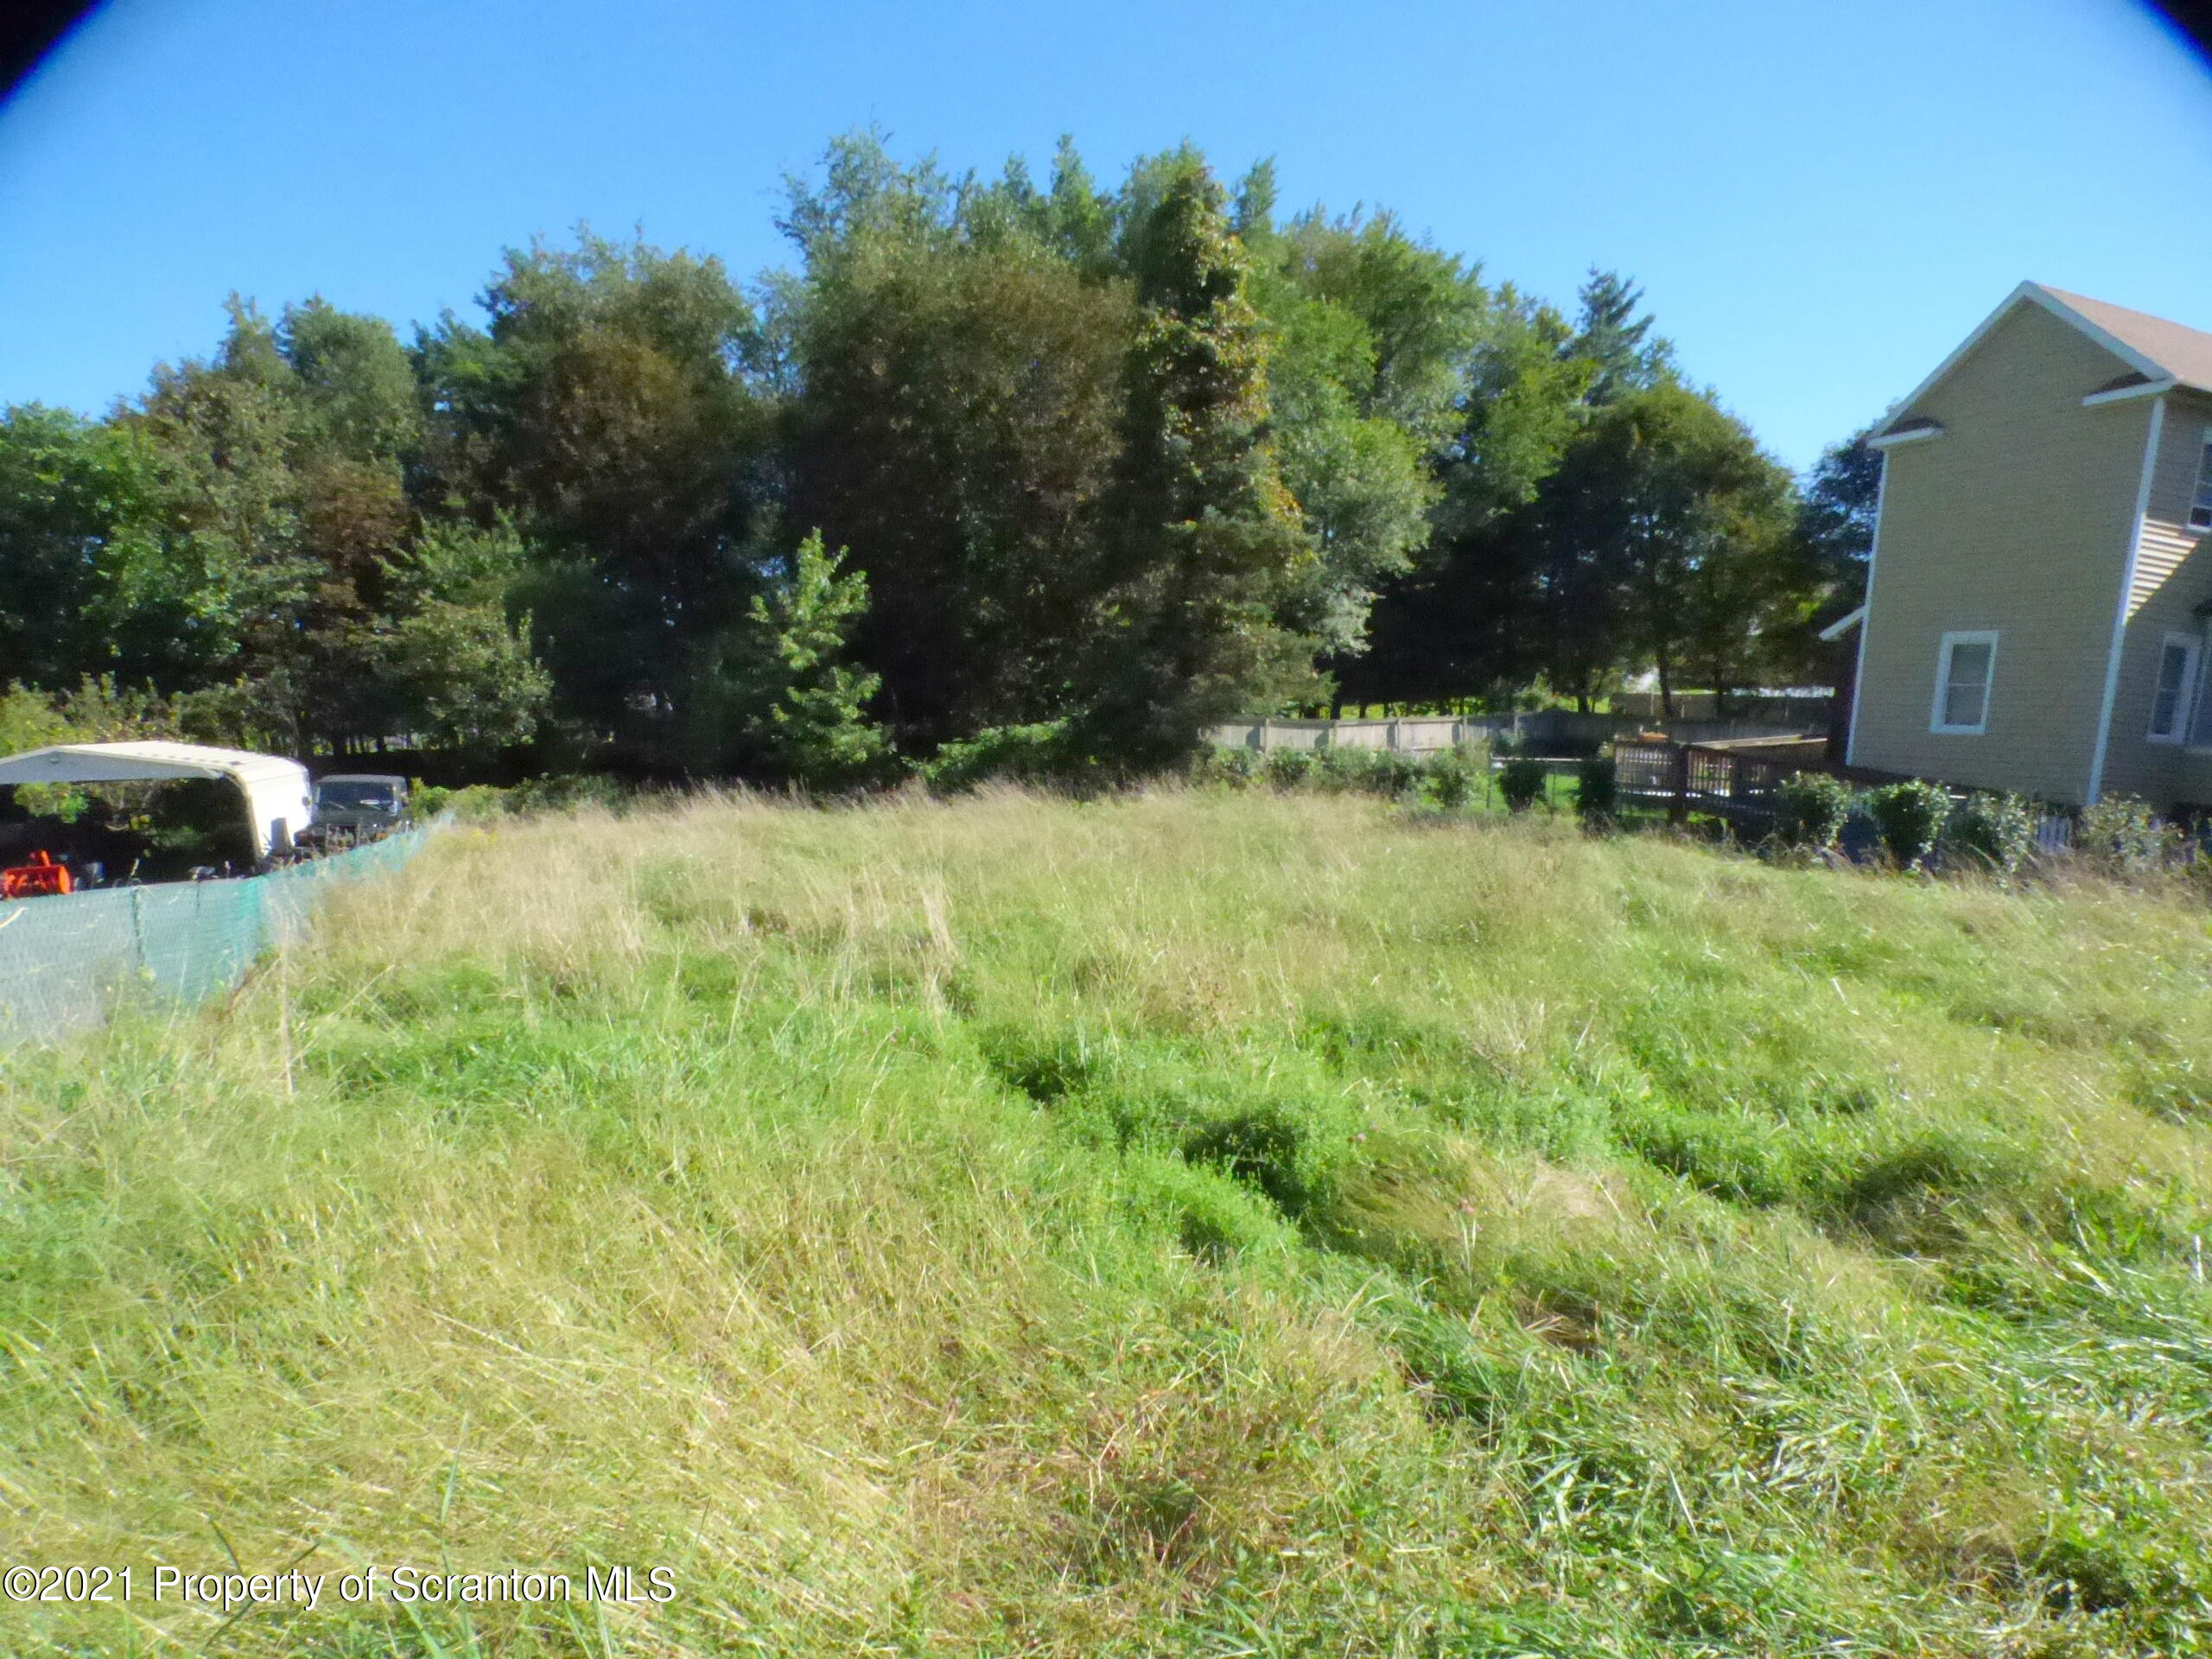 400 - 402 Haverly St, Throop, Pennsylvania 18512, ,Land,For Sale,Haverly,21-4401